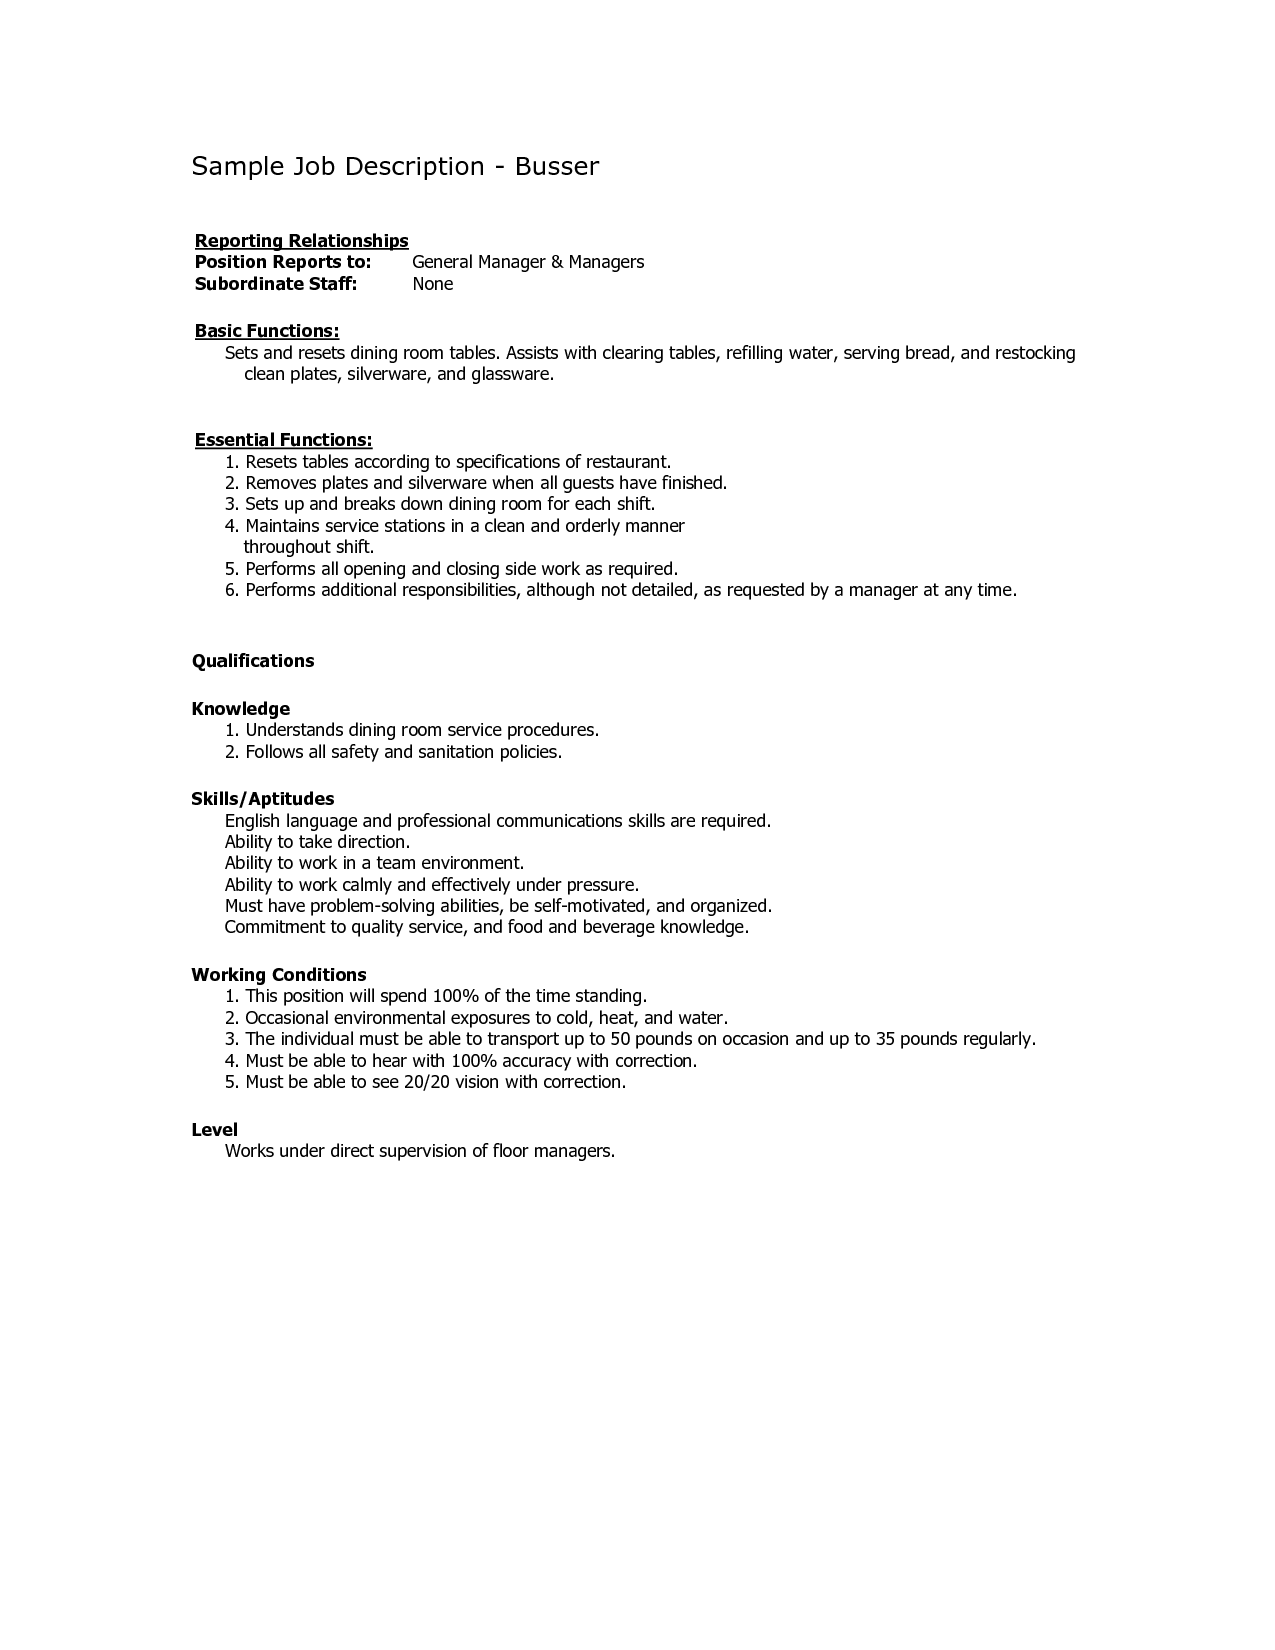 Busser Job Description for Resume  SampleBusinessResume.com : SampleBusinessResume.com